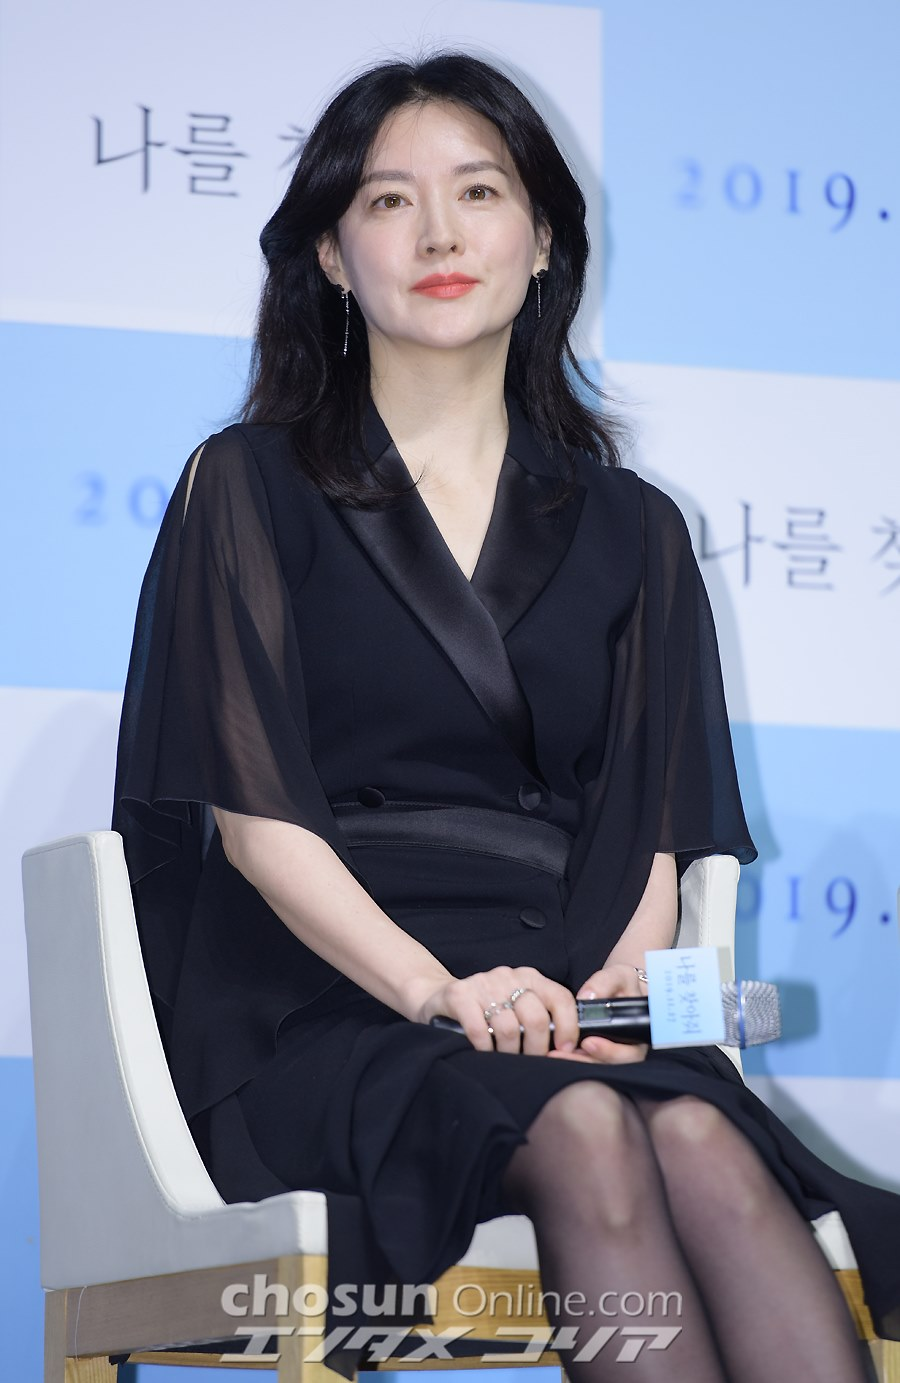 Actress Lee Young-ae Says Motherhood Has Deepened Her Acting